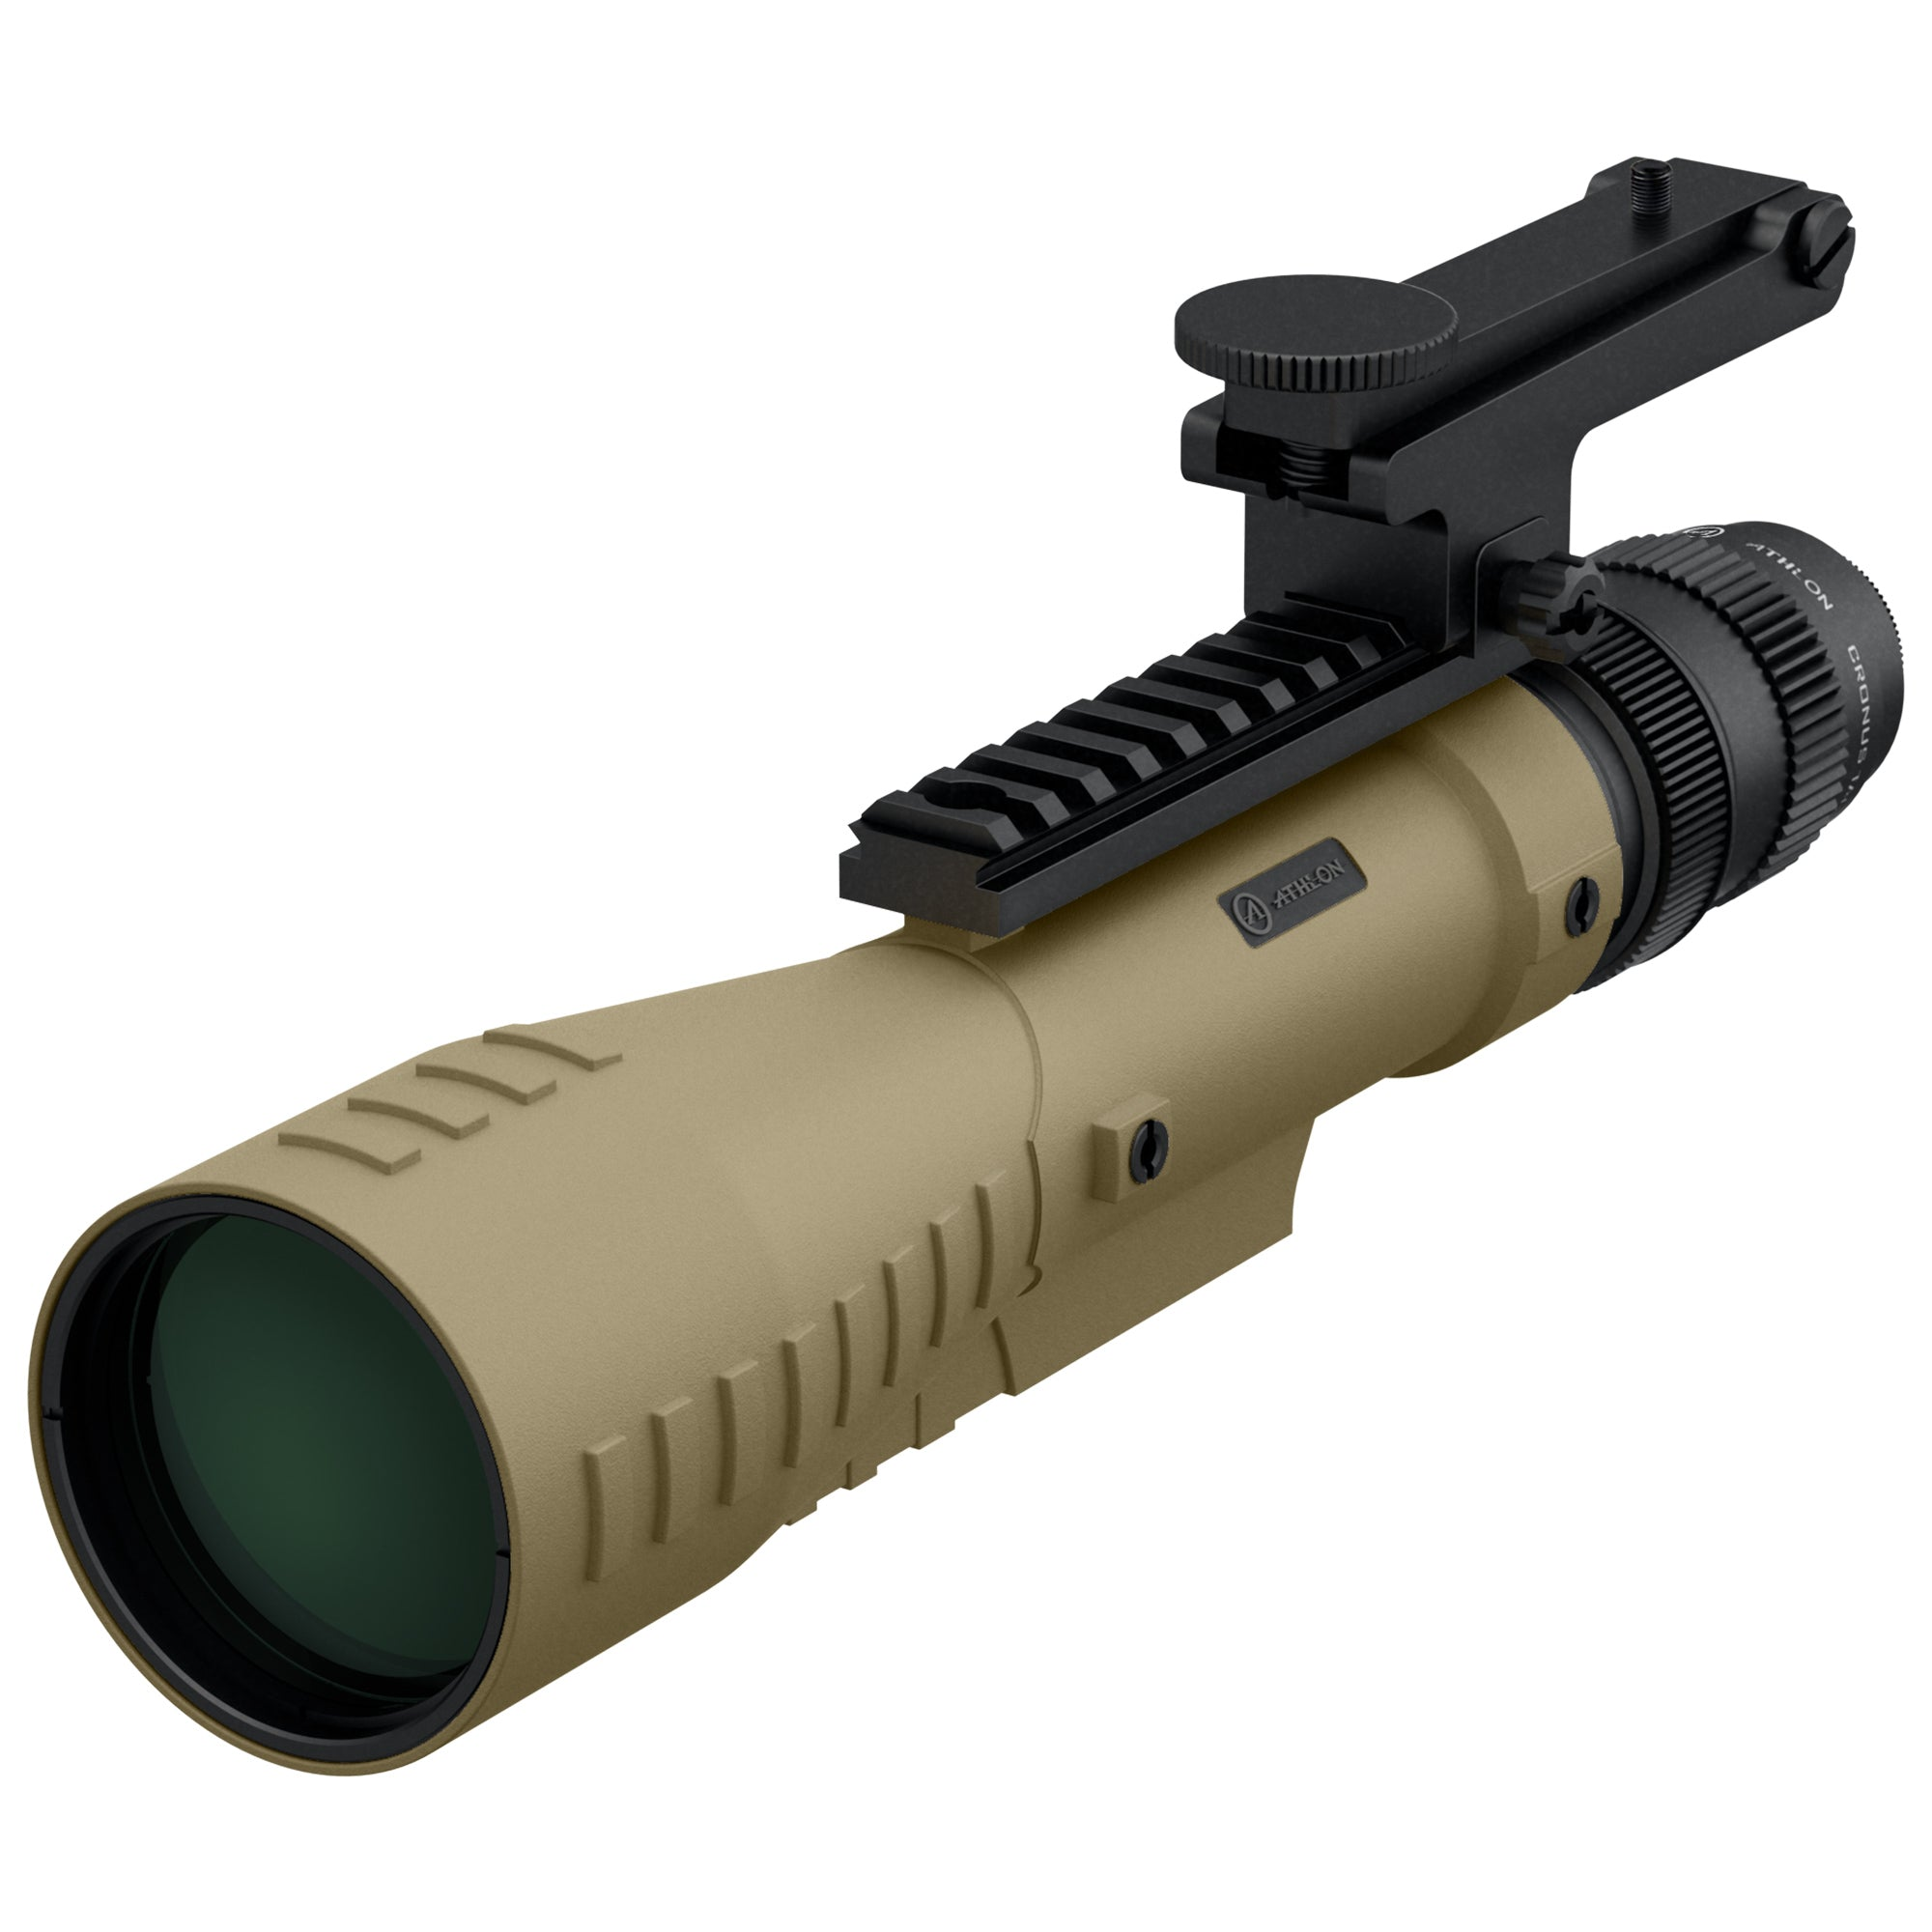 Cronus Tactical Spotting Scope - A&J Sporting